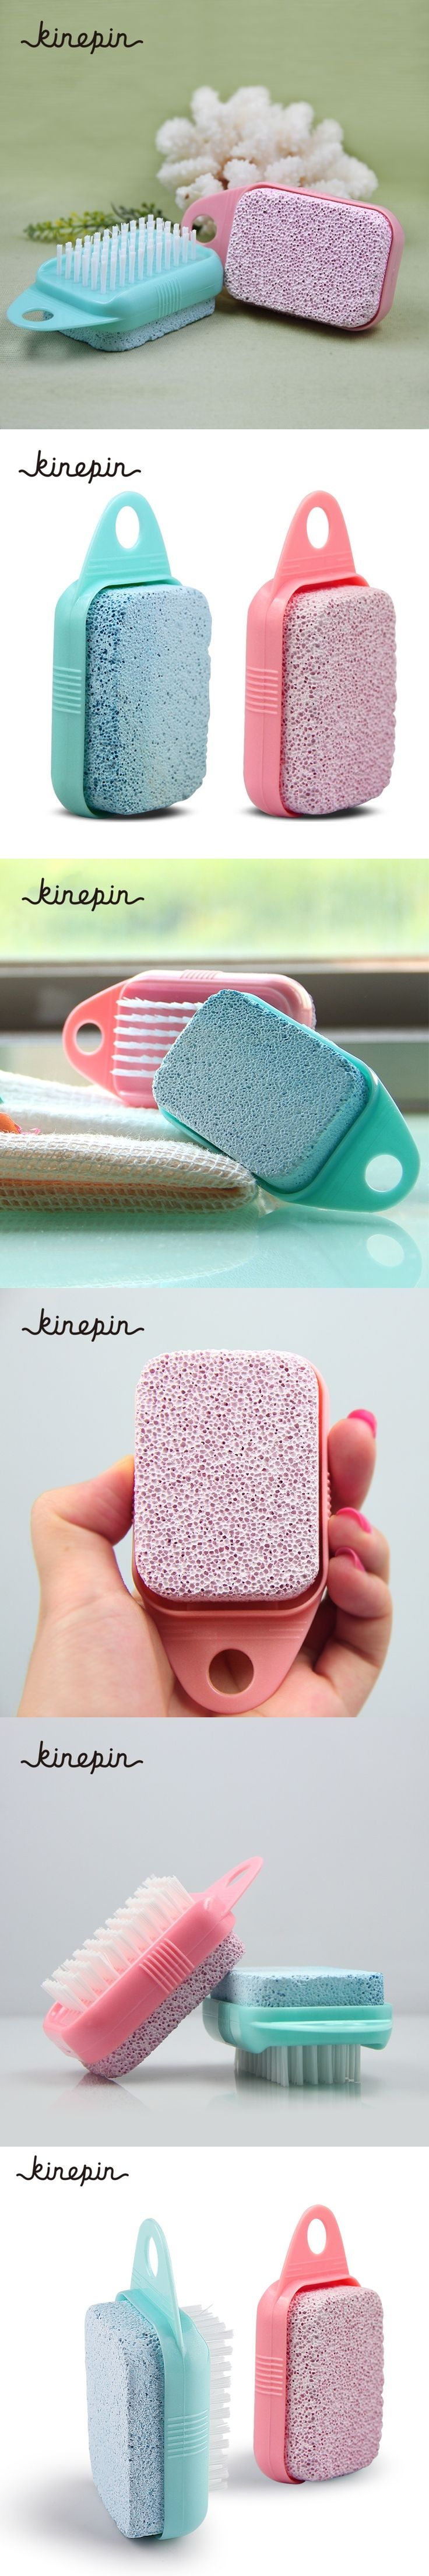 Foot Care Callus Brush Pumice Grinding Feet Stone Scrubber Pedicure Exfoliate Remover Cleaning Dust Dead Skin